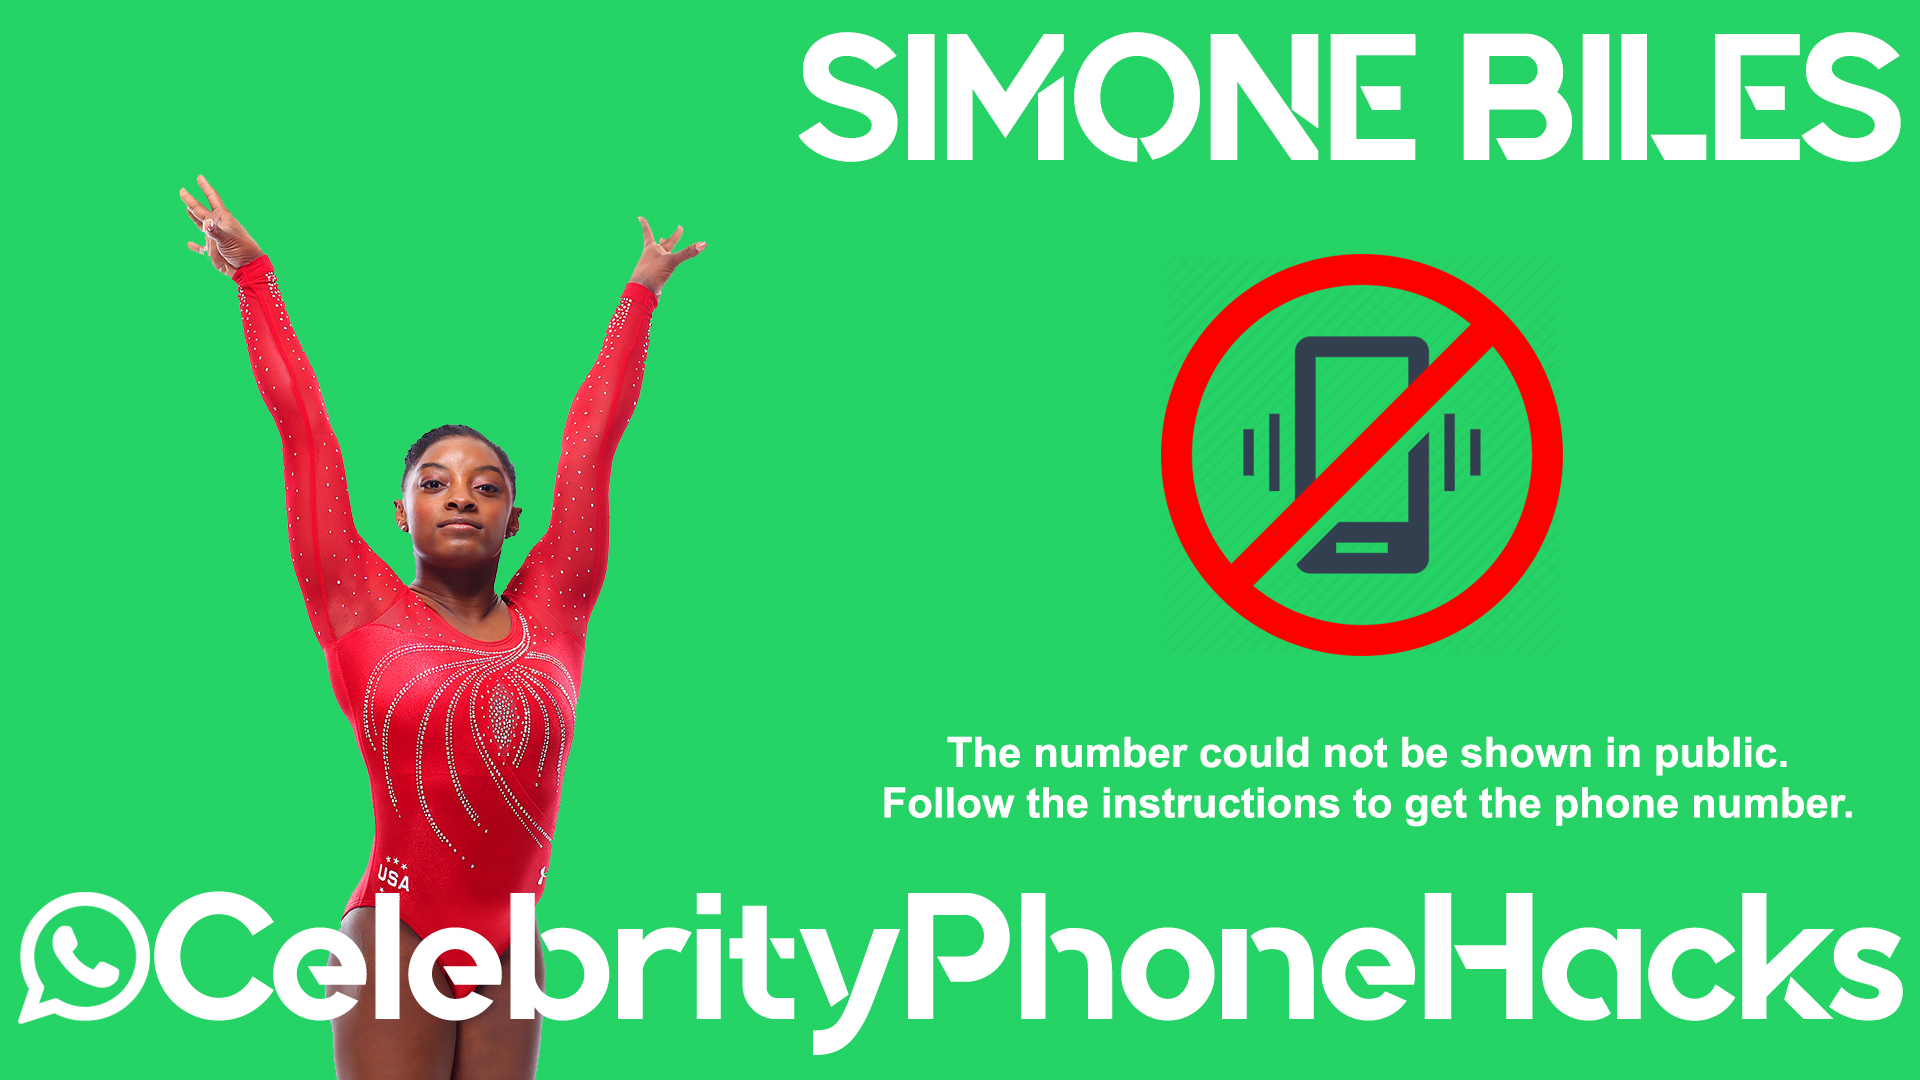 Simone Biles real phone number 2019 whatsapp hacked leaked